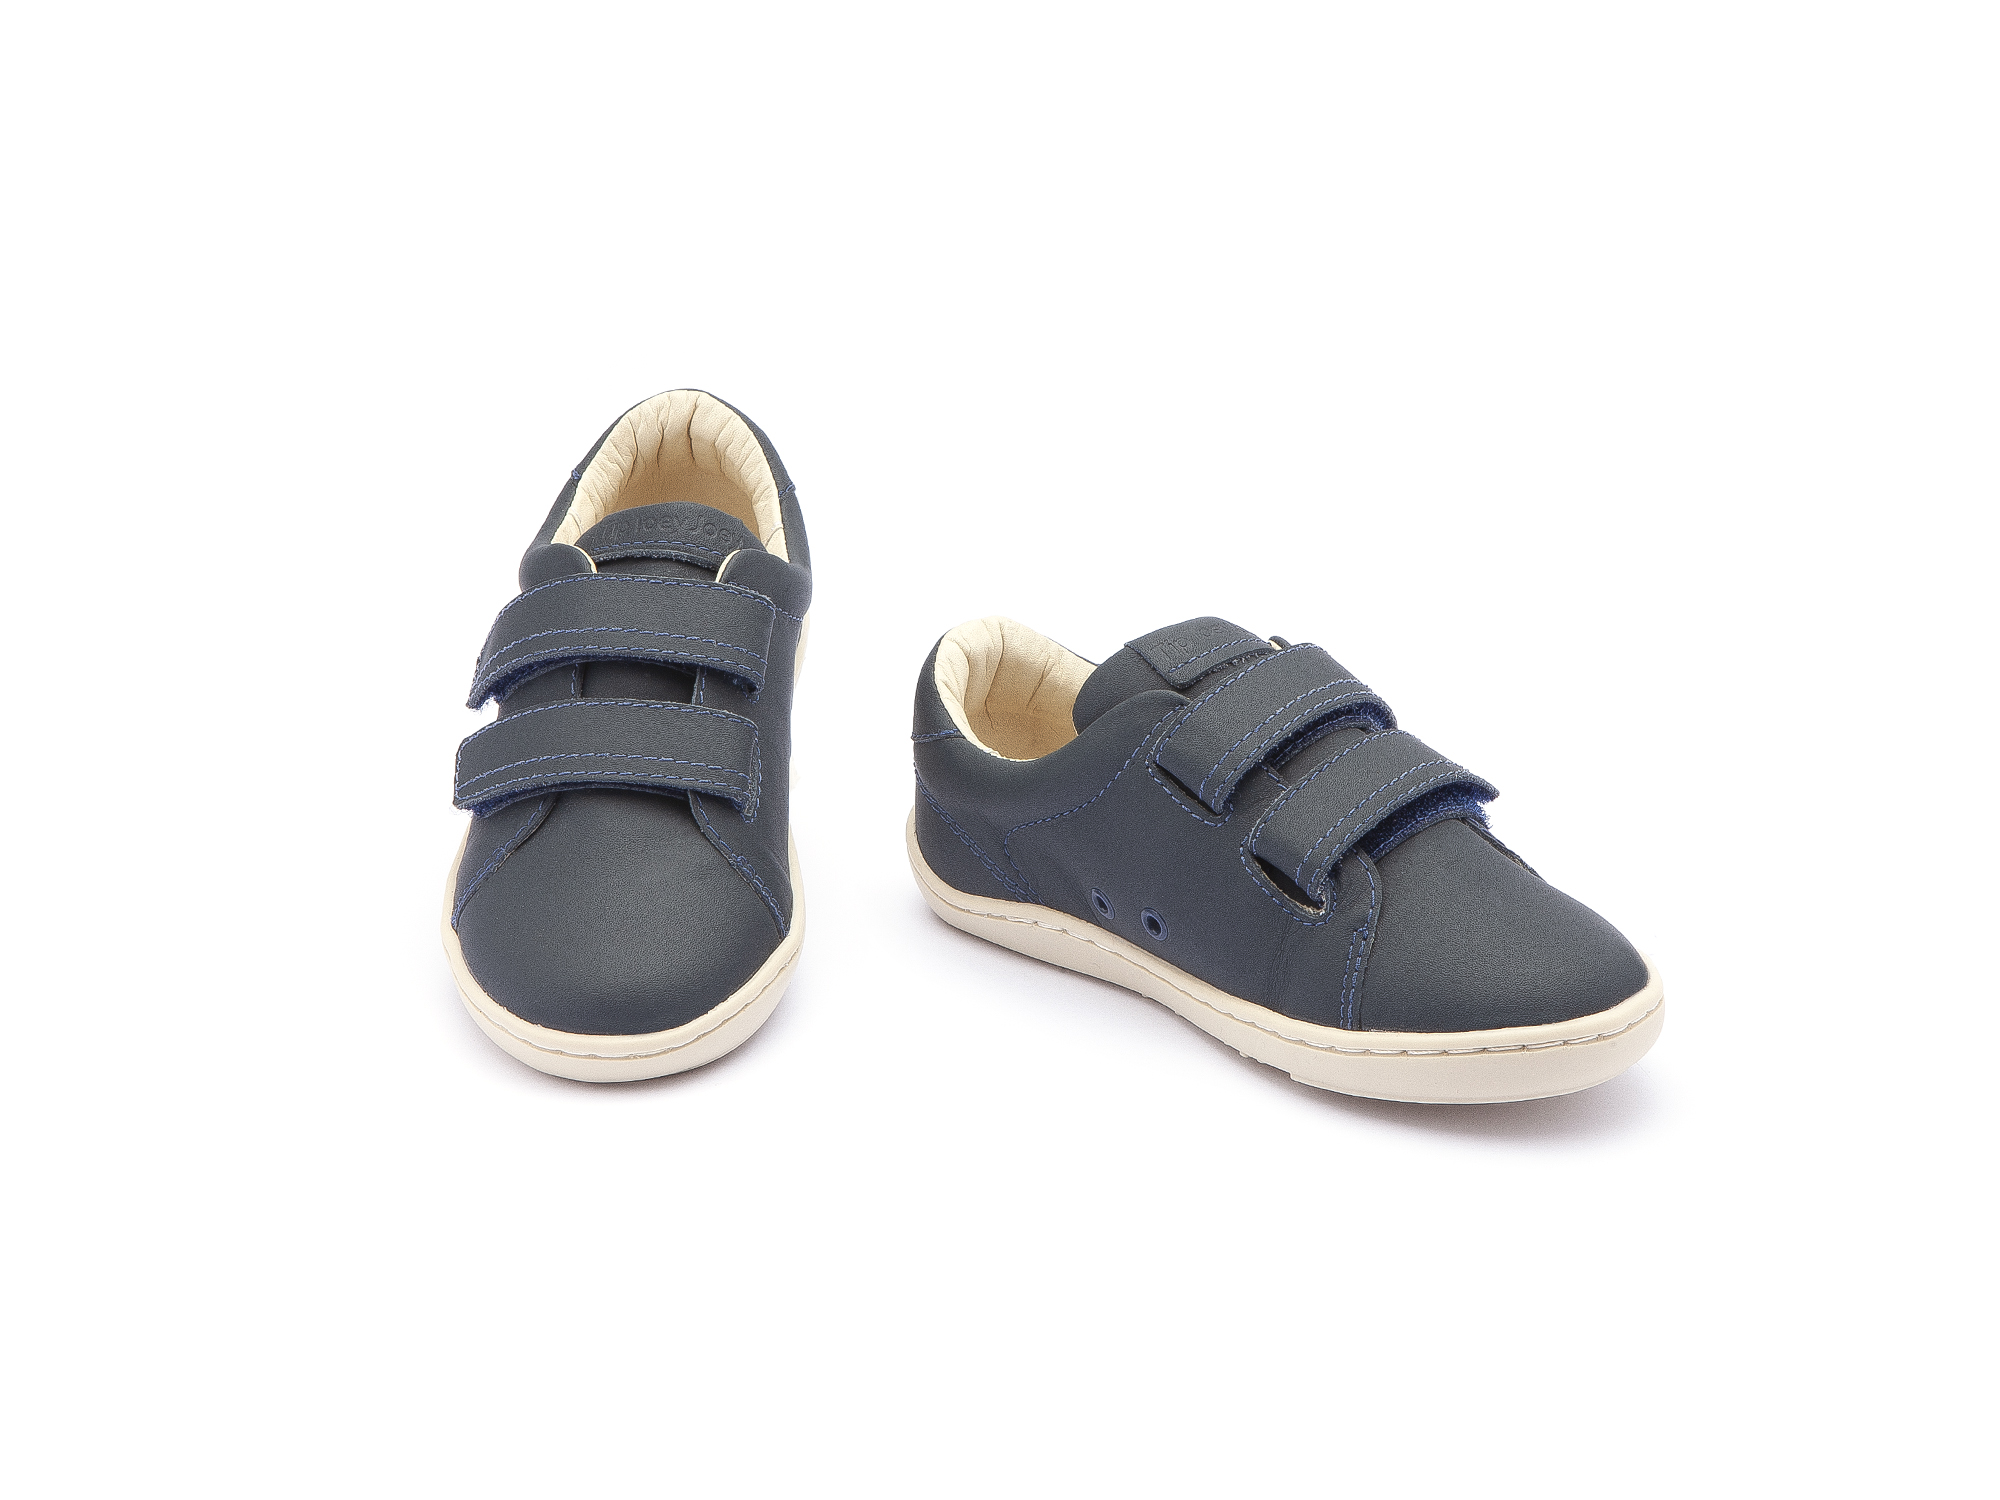 Sneaker Casual Little Guide Navy  Toddler 2 à 4 anos - 1